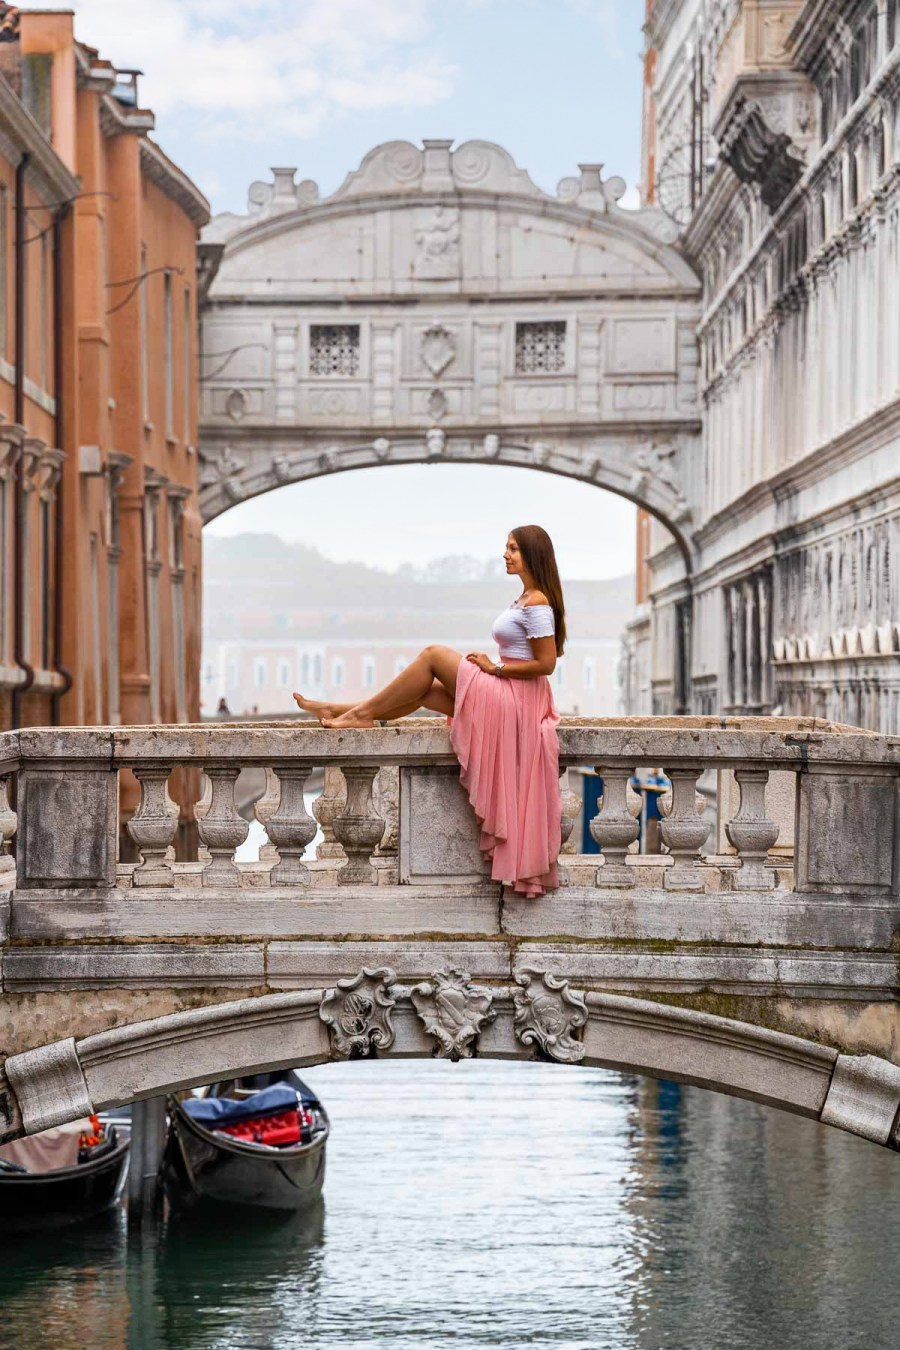 Girl in a pink skirt sitting on a stone bridge in front of the Bridge of Sighs in Venice